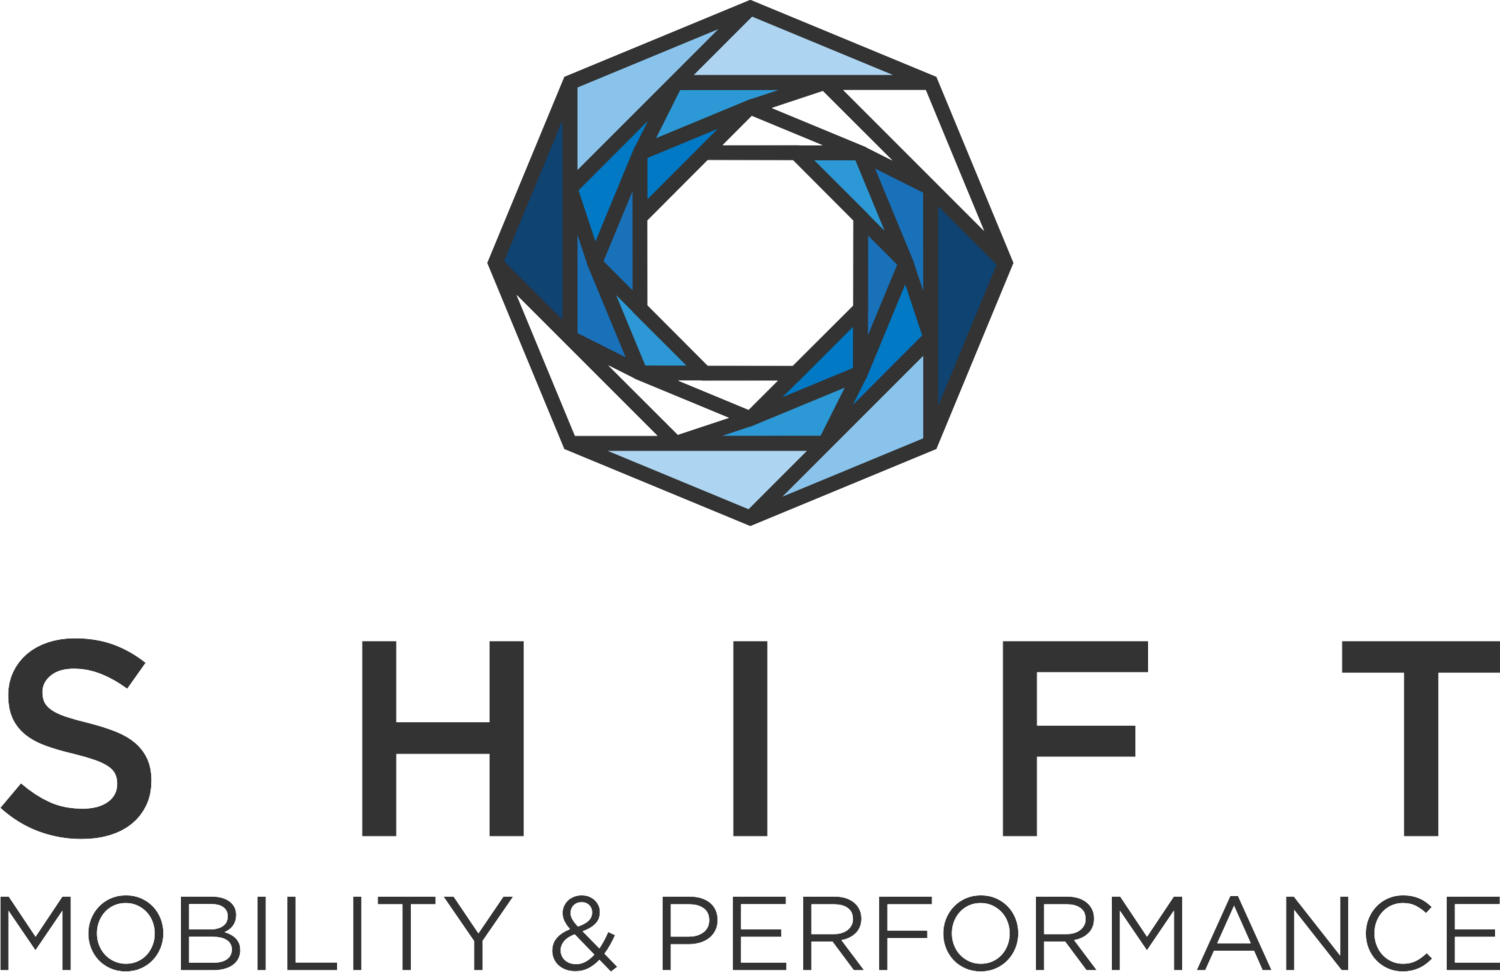 SHIFT MOBILITY & PERFORMANCE